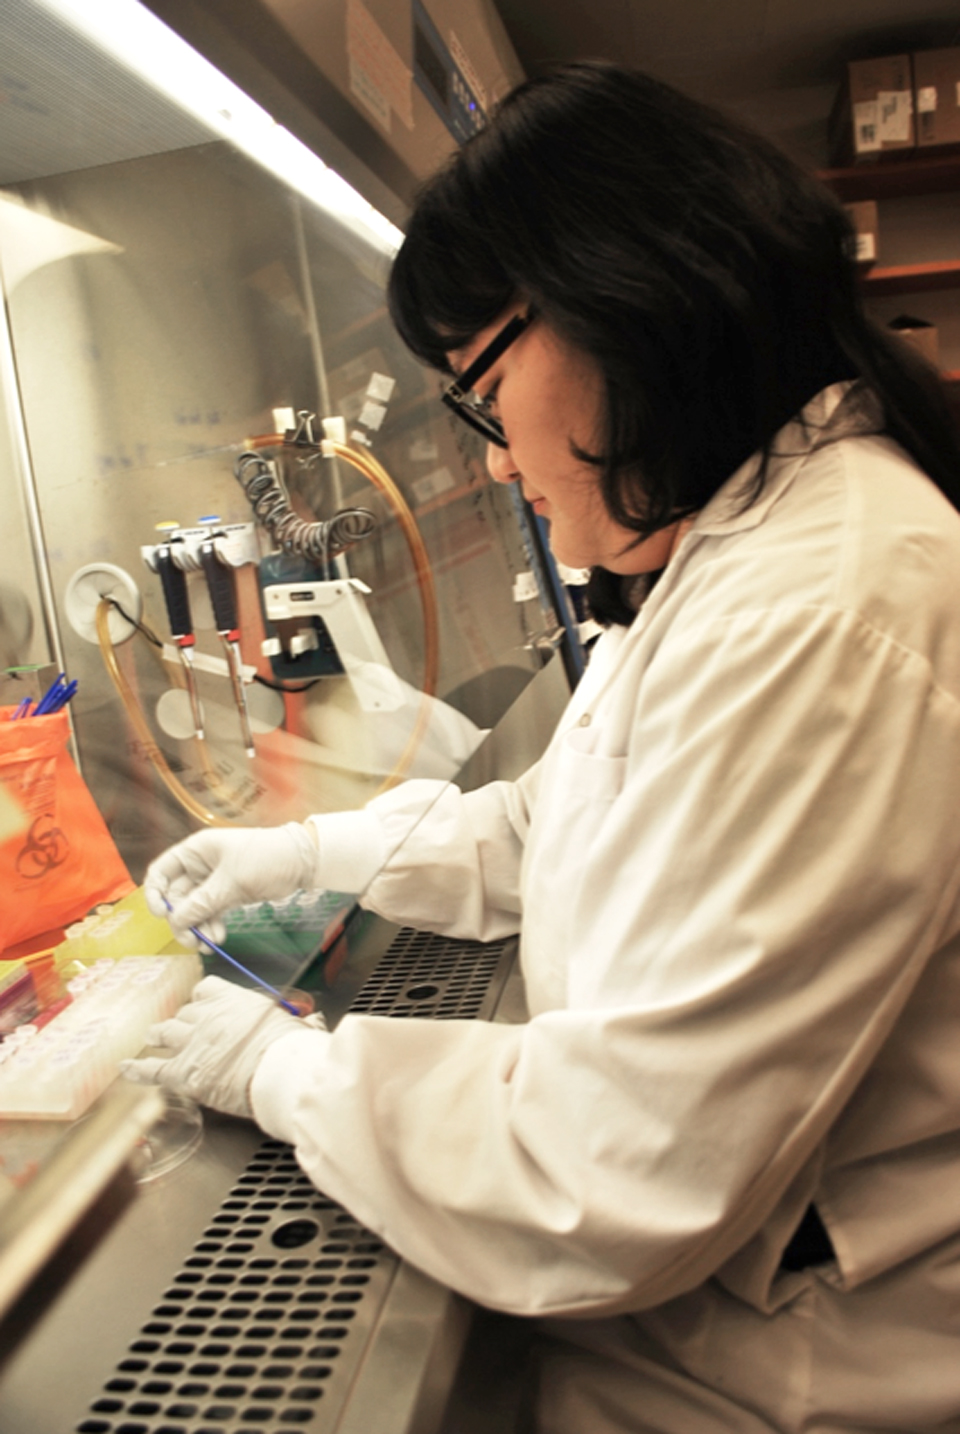 Melissa Phuong preparing for her experiments.